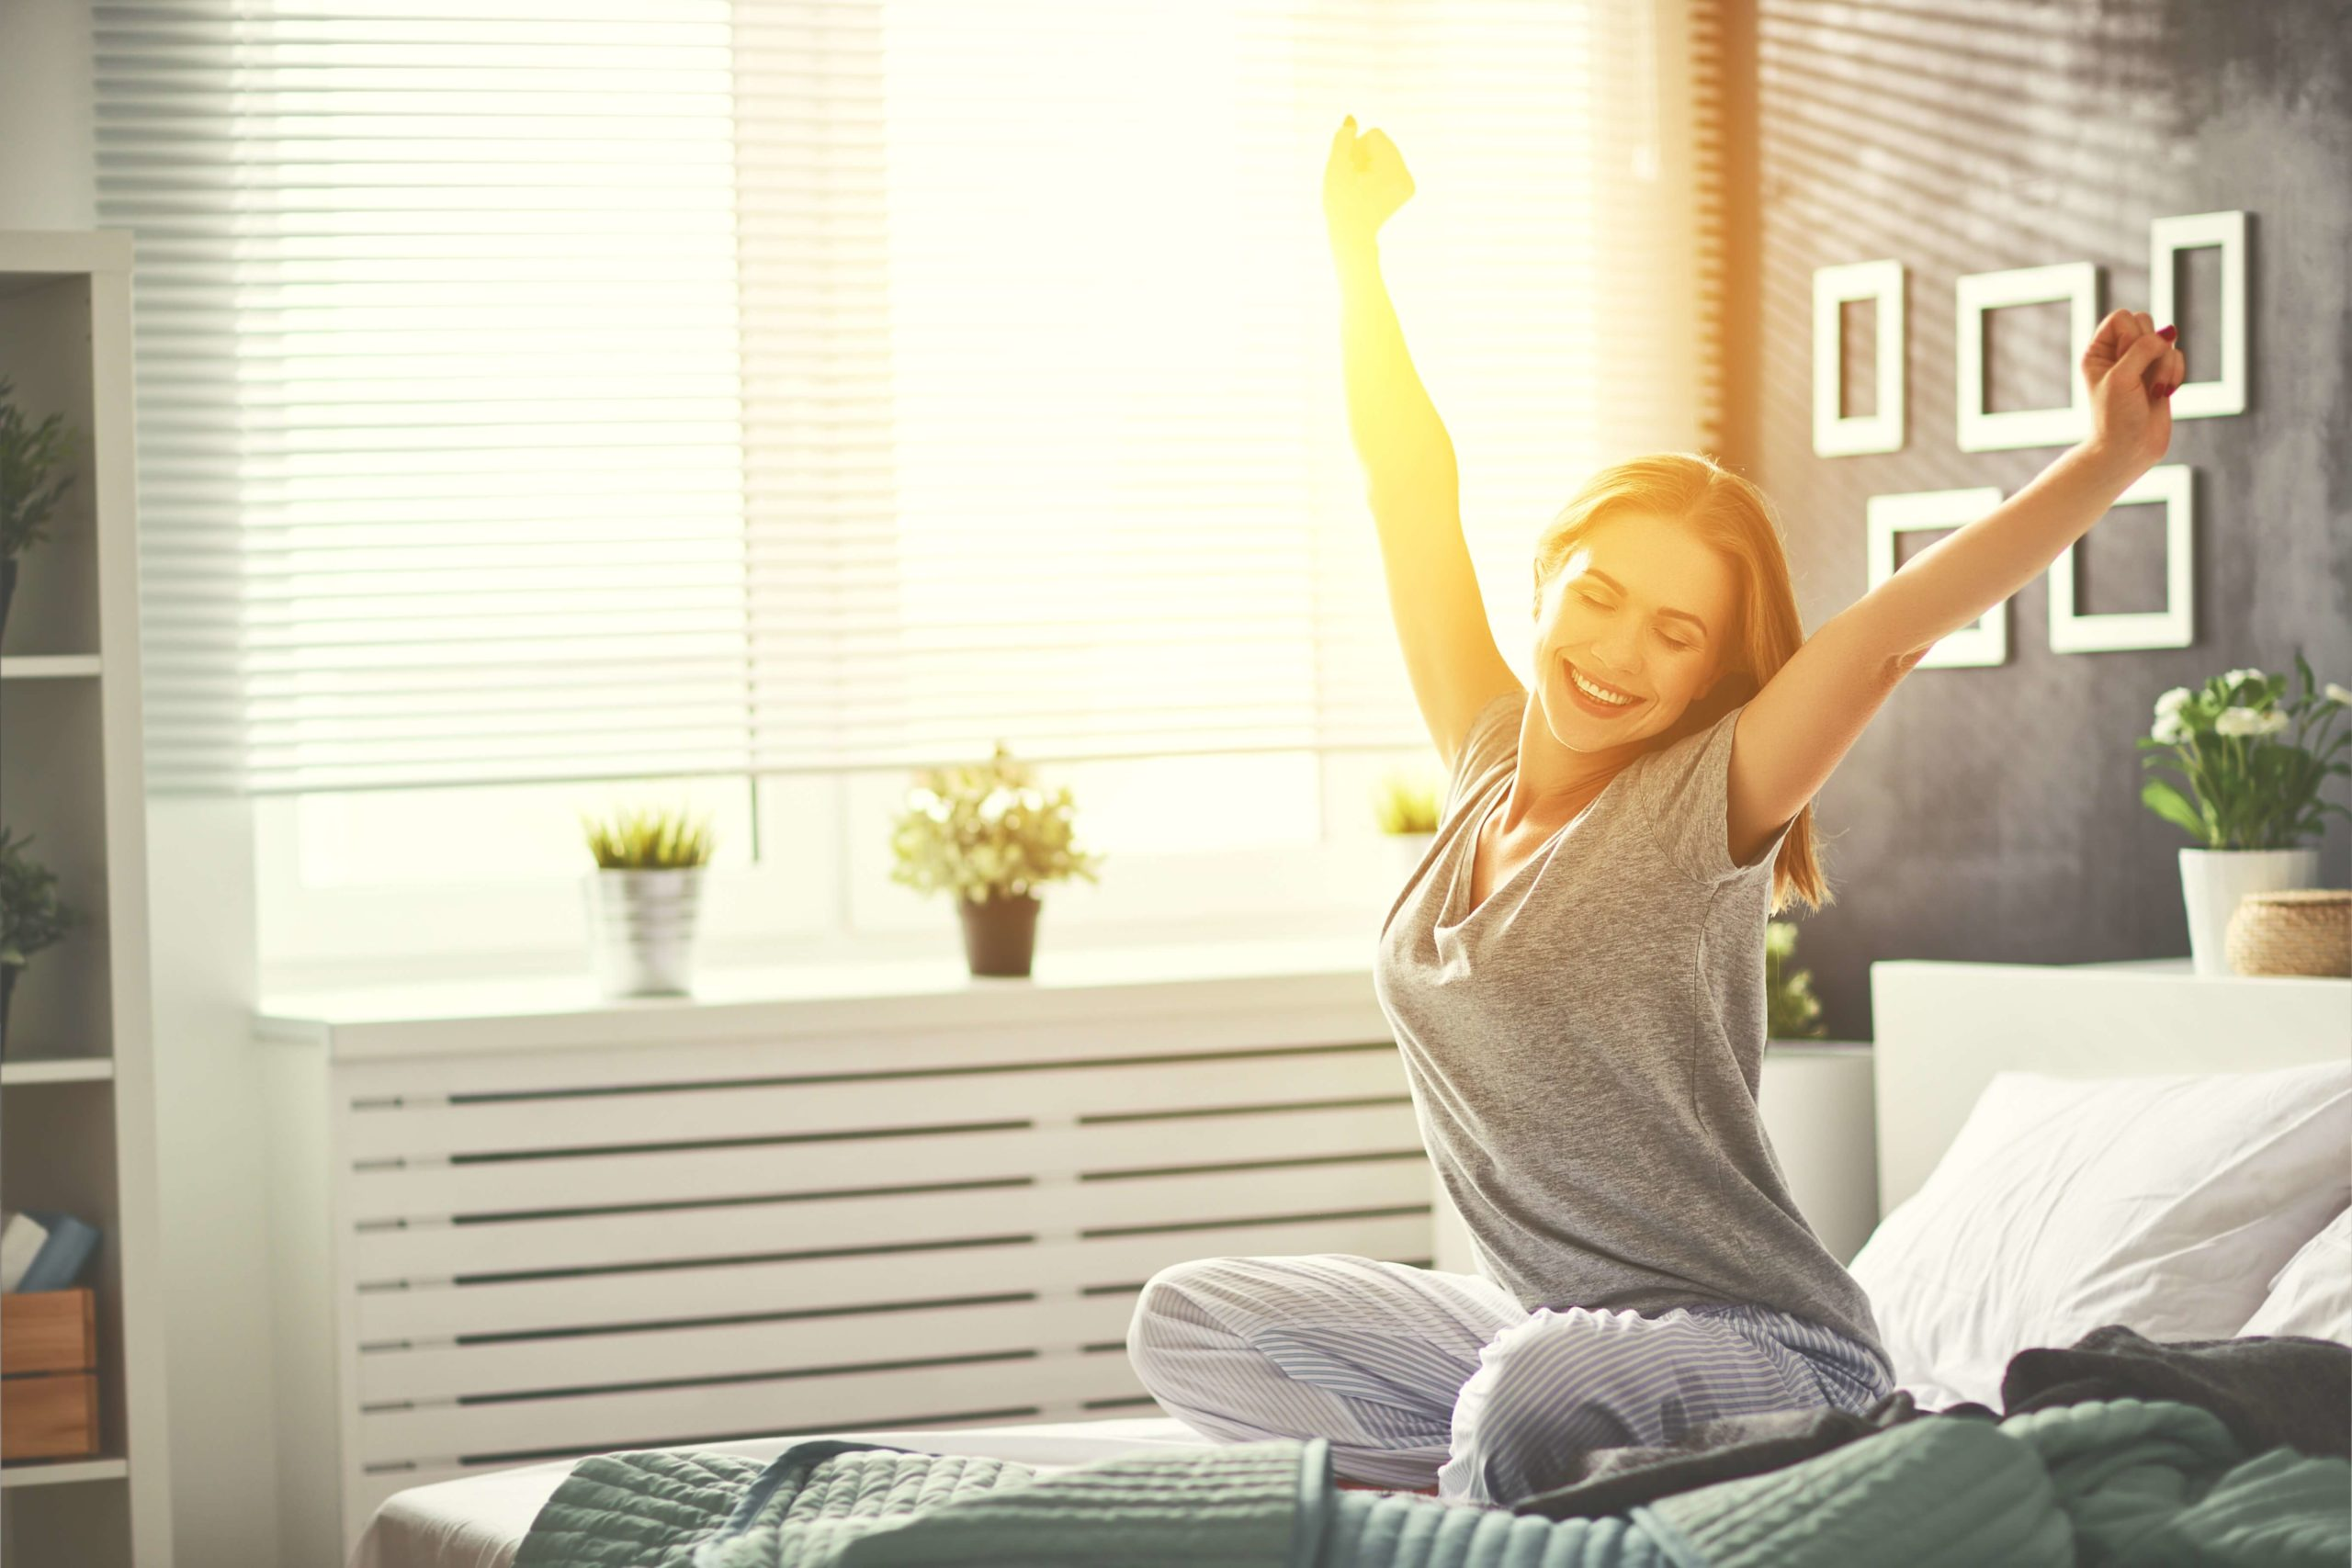 Young woman wakes up rested while sun shines in the window